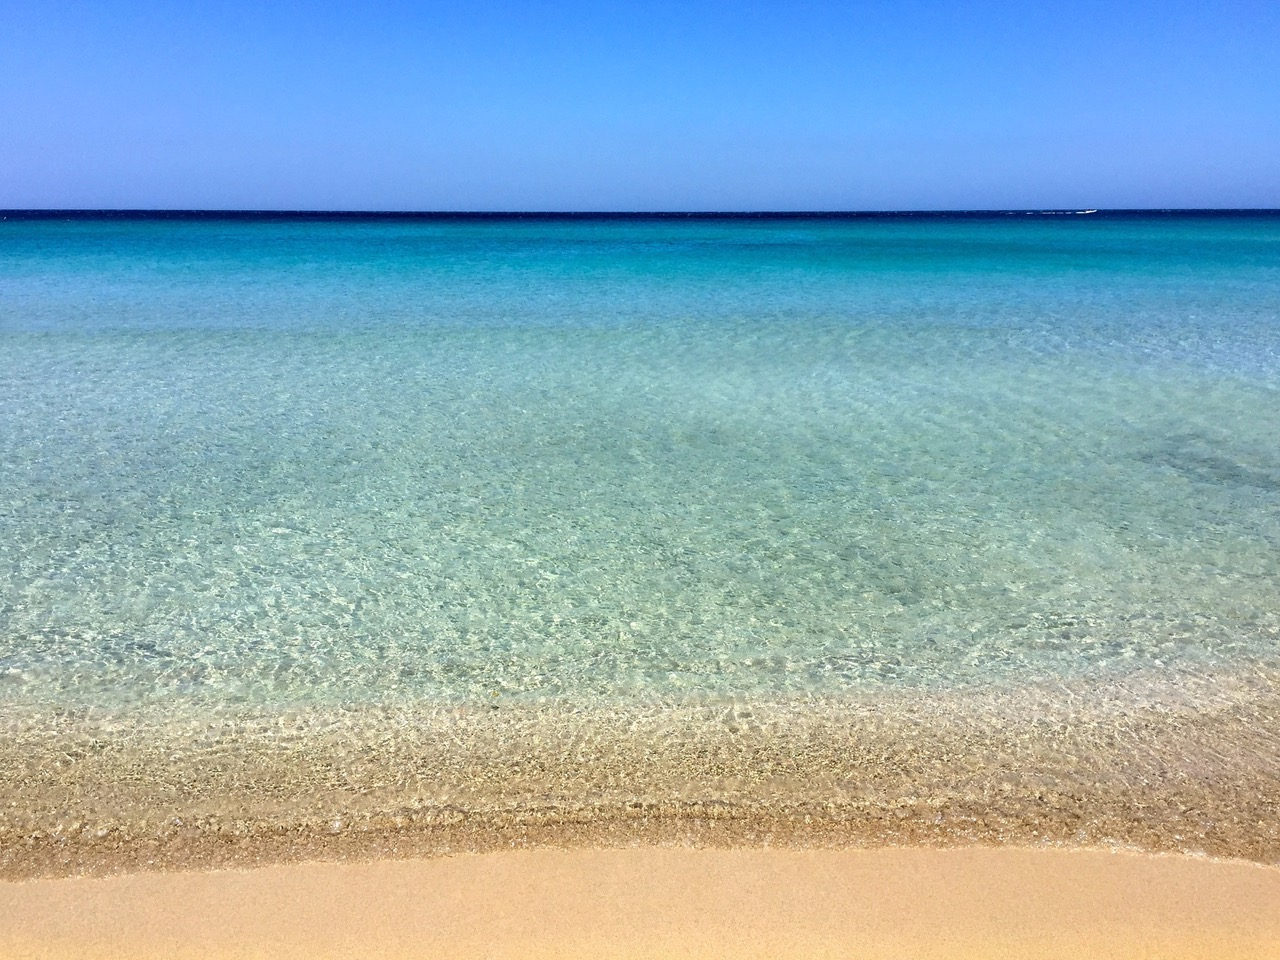 The blues of the Ionian Sea